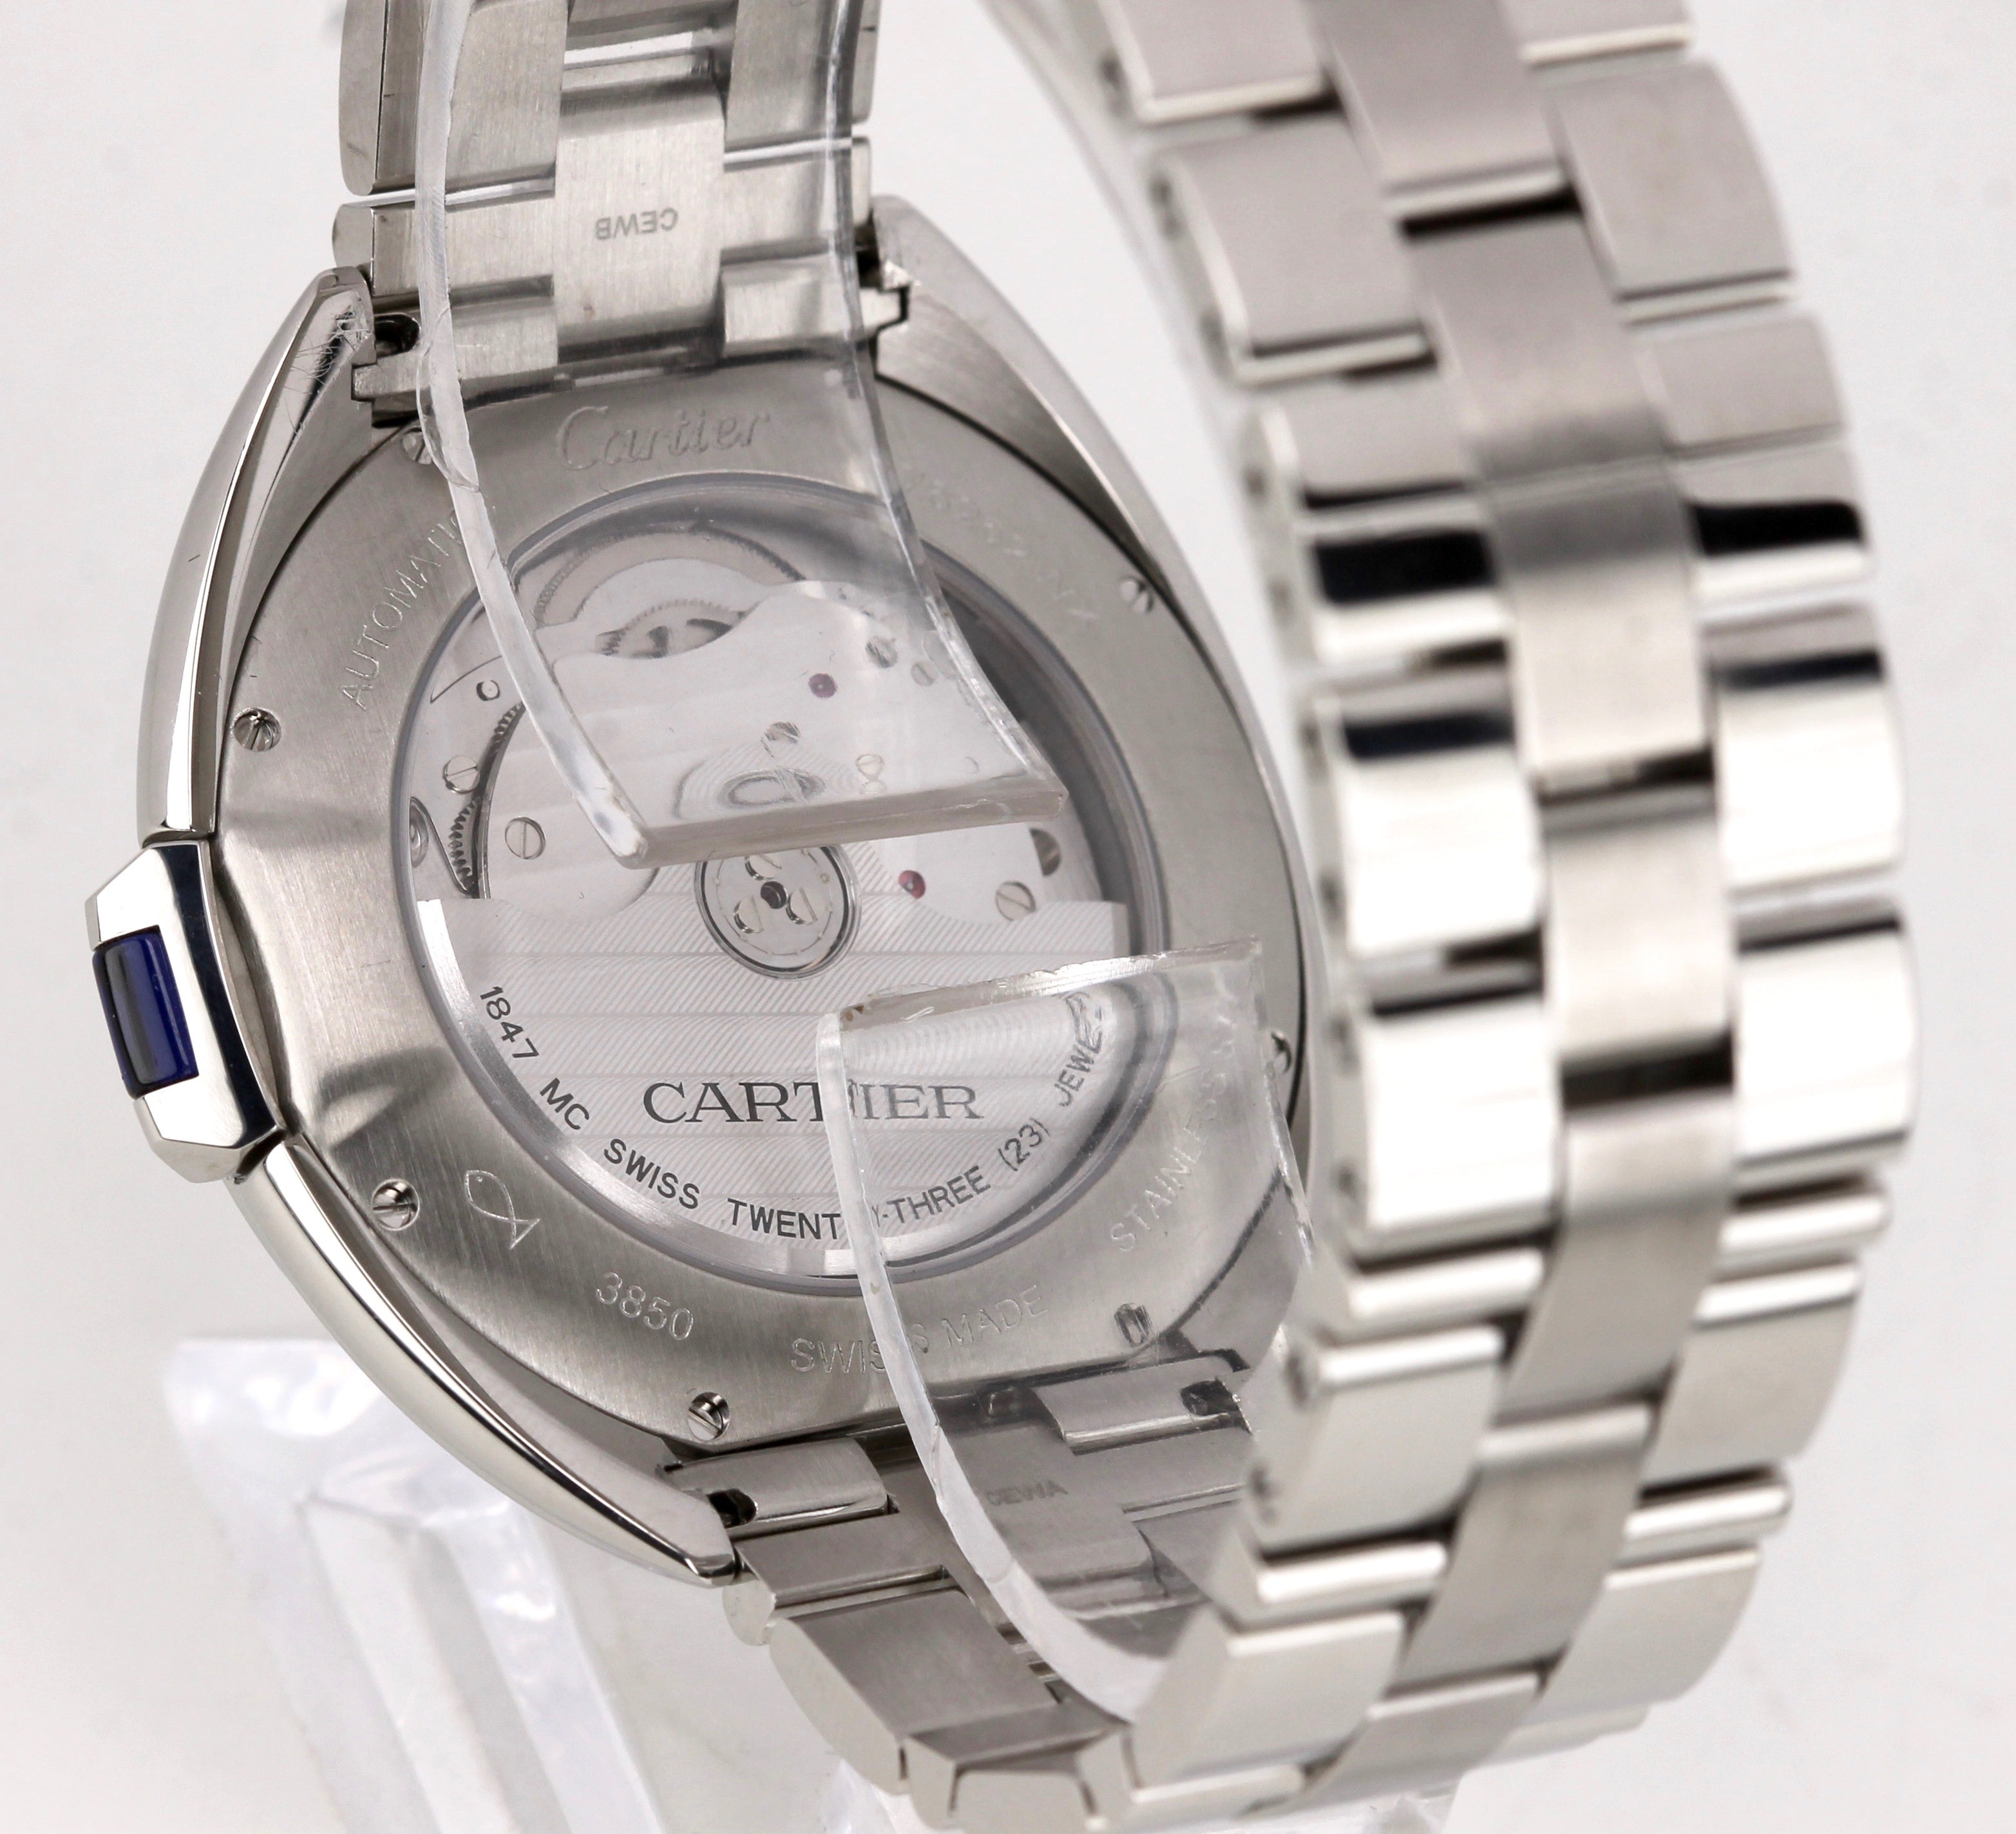 2017 Cartier Clé Cle Automatic WSCL0007 3847 40mm Stainless Steel Date Watch